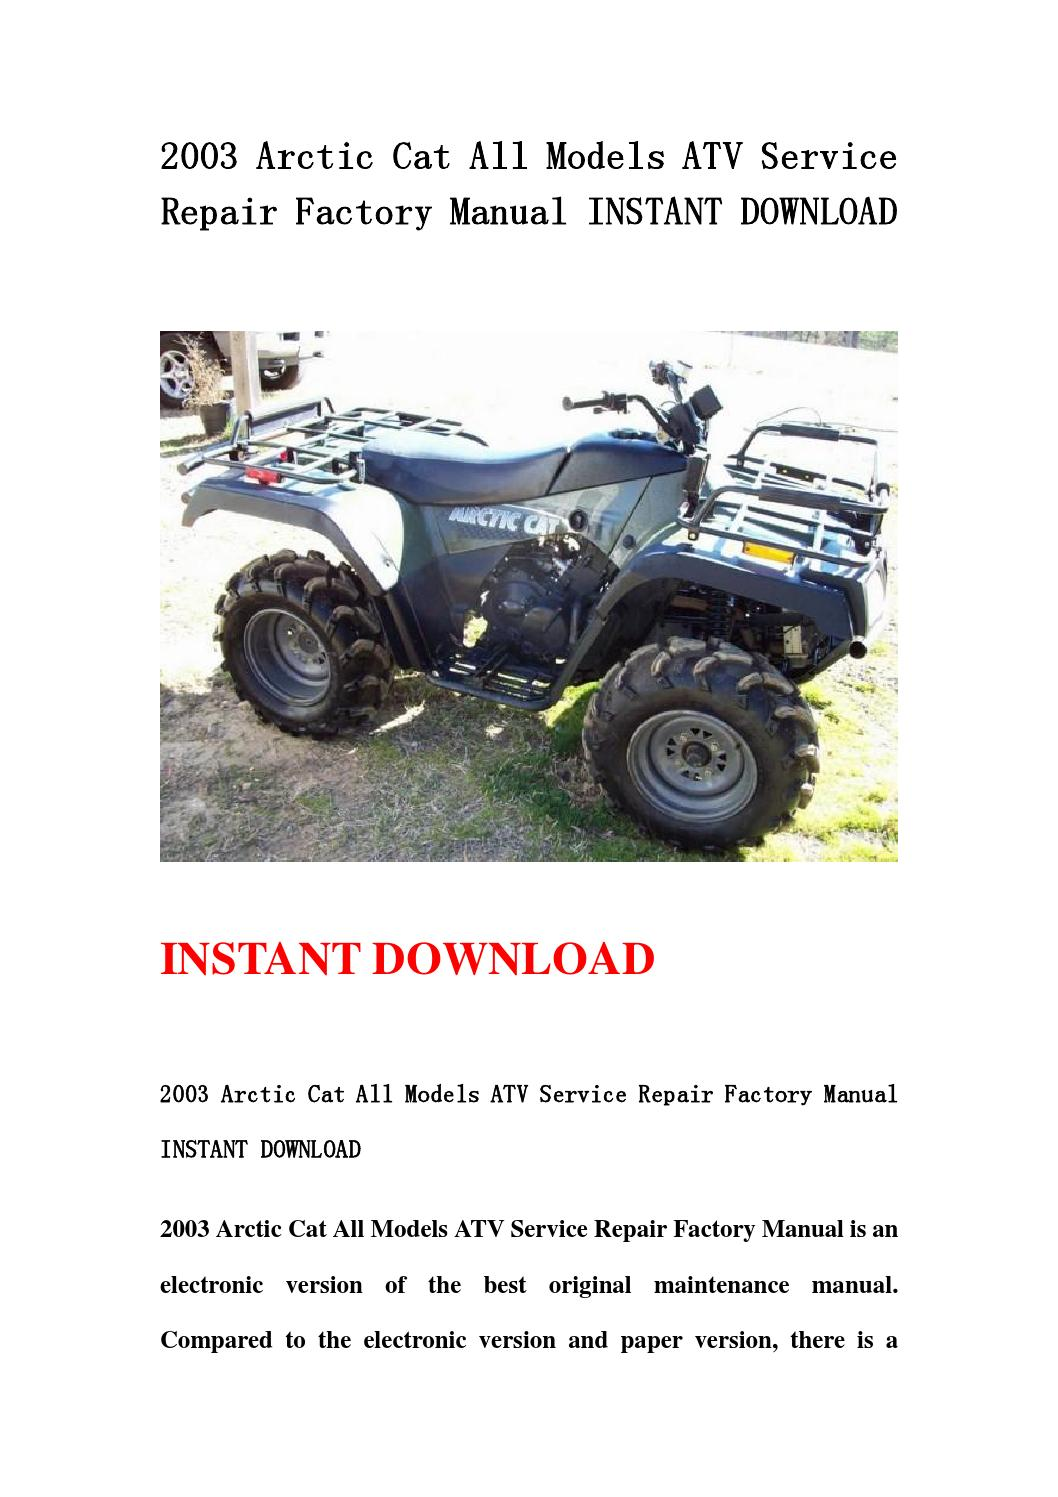 2005 arctic cat atv service manual download